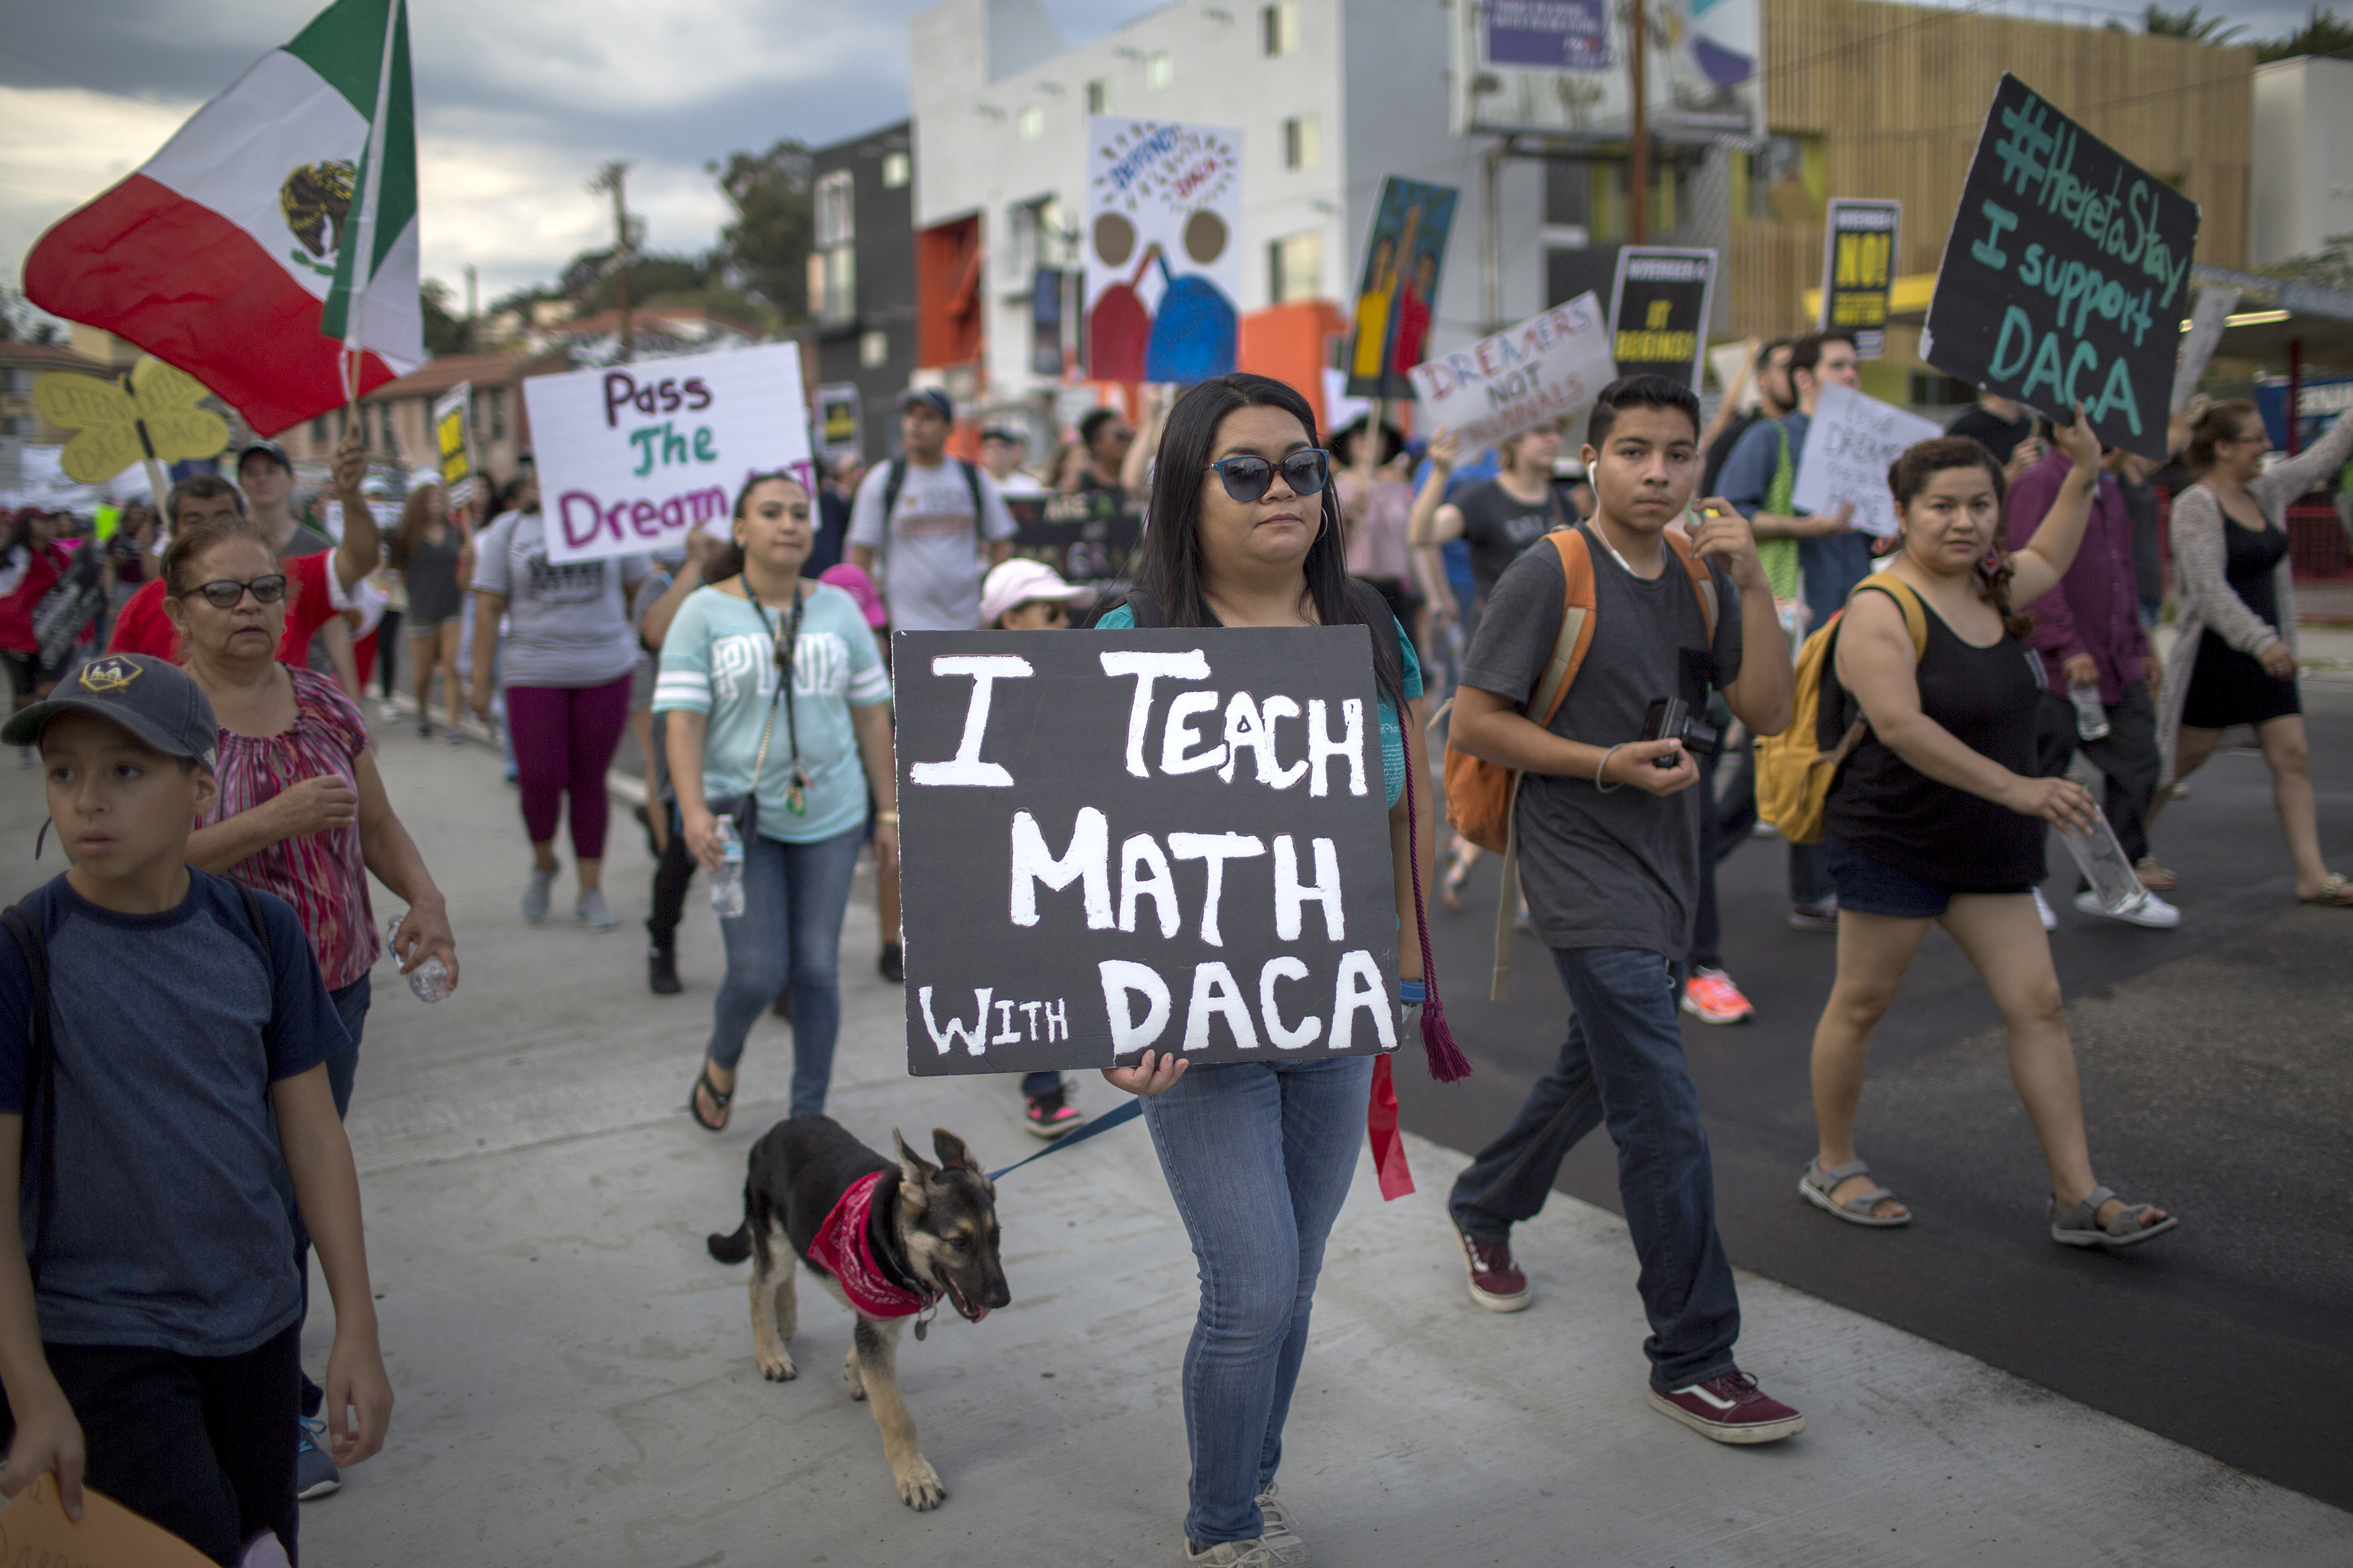 Proposals to Change Tuition and DACA Laws Could Threaten Education